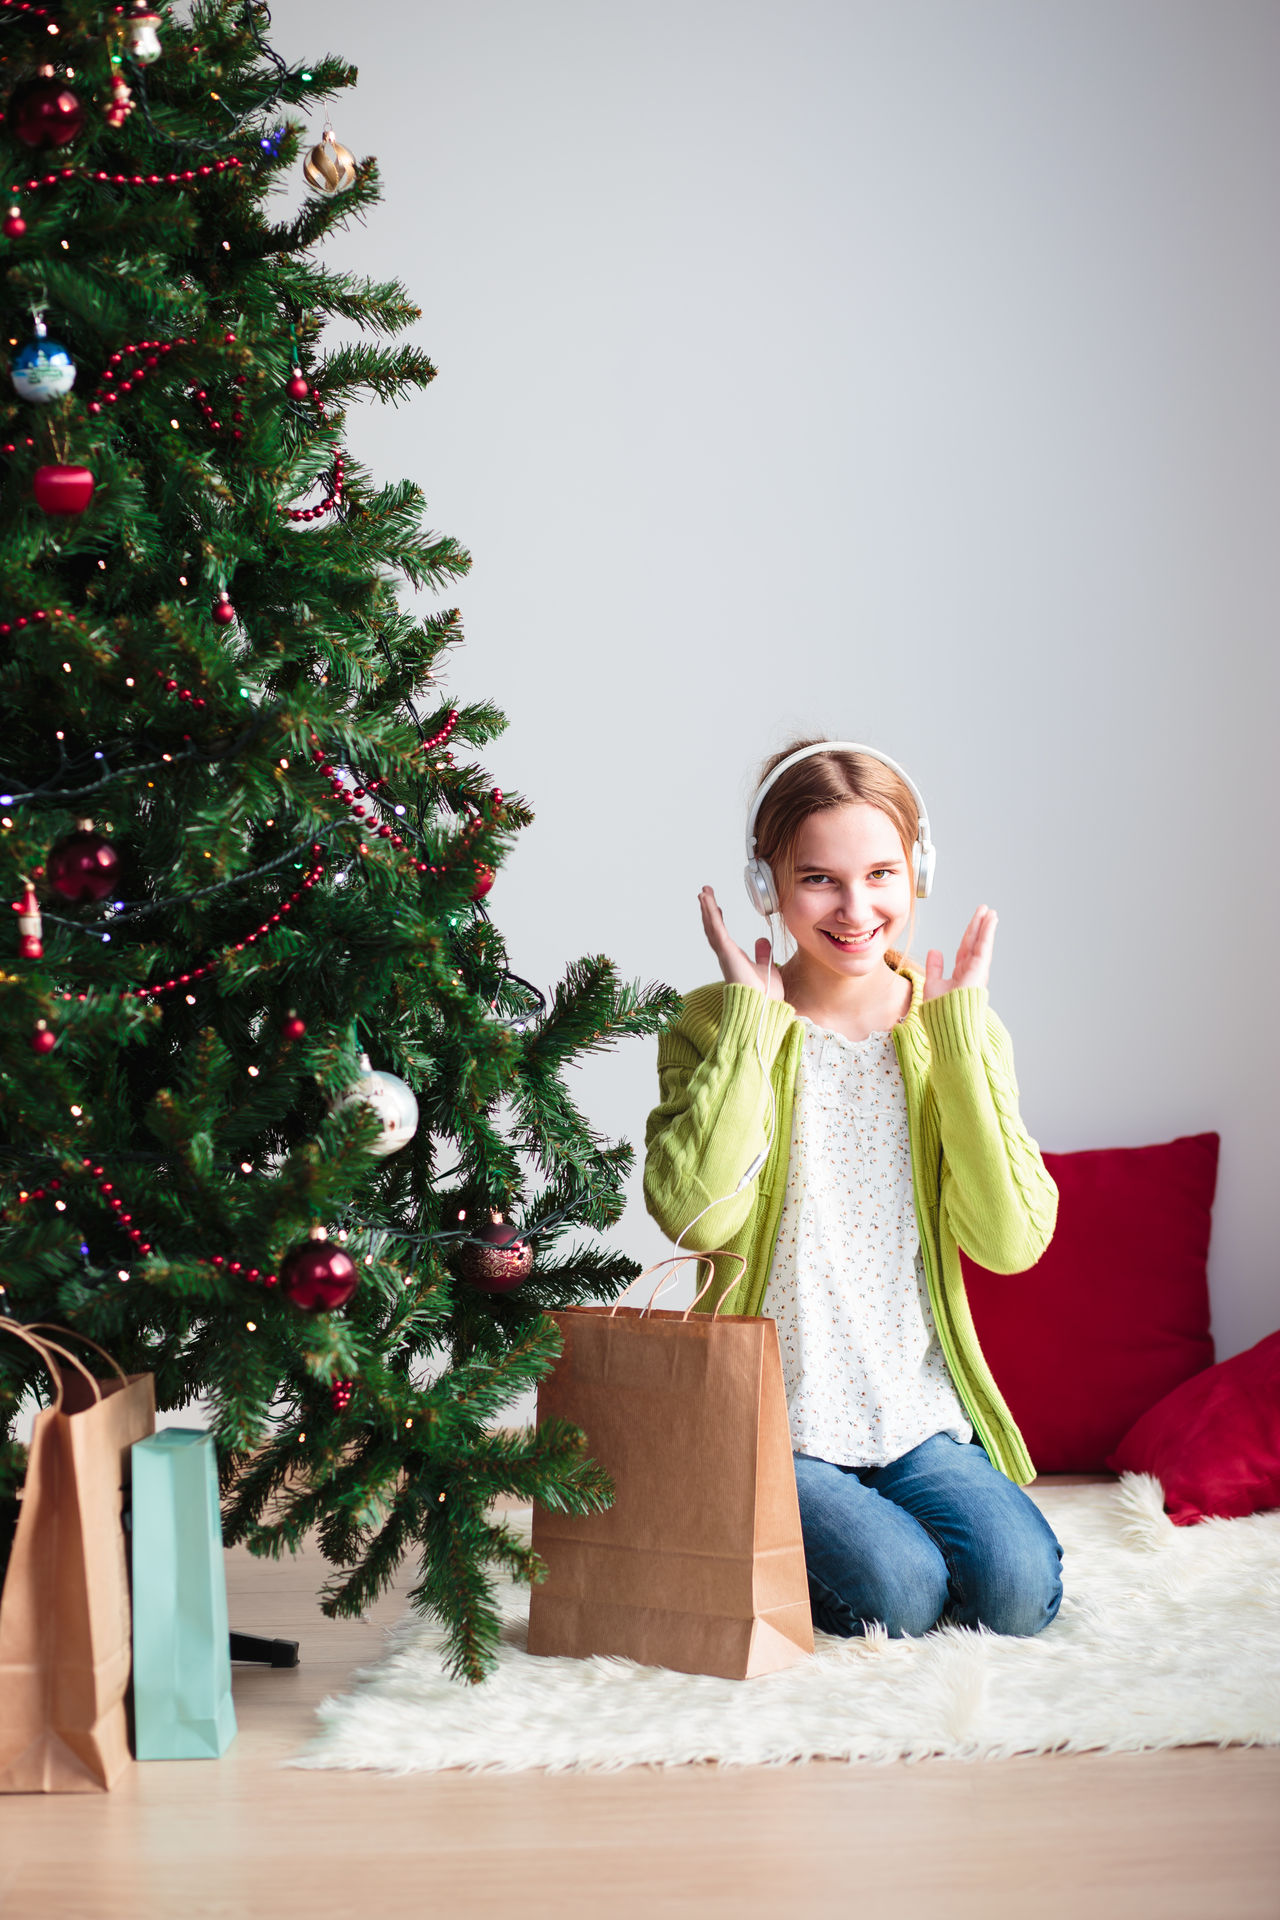 Beautiful stock photos of weihnachtsbaum,  12-13 Years,  Arms Raised,  Blanket,  Blond Hair